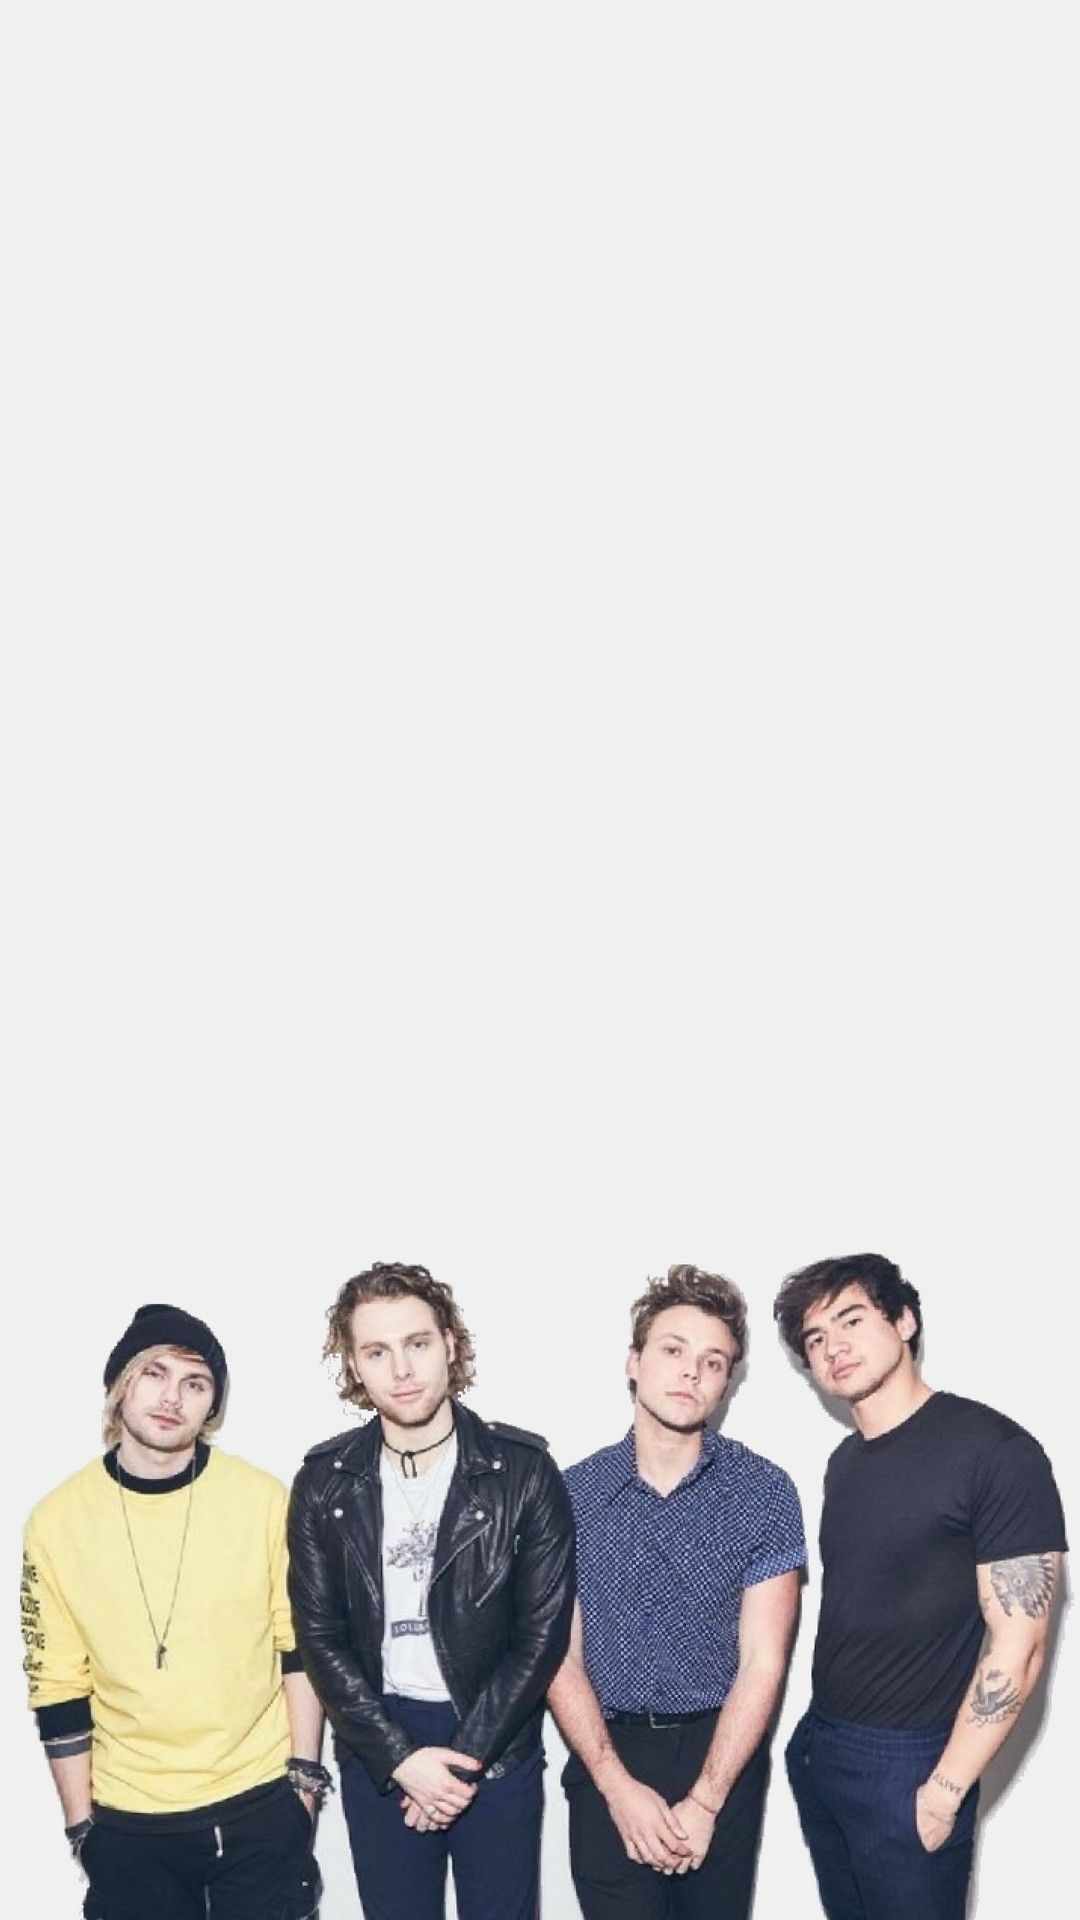 5sos Lockscreen Background 5sos Wallpaper 5 Seconds Of Summer 5sos Background